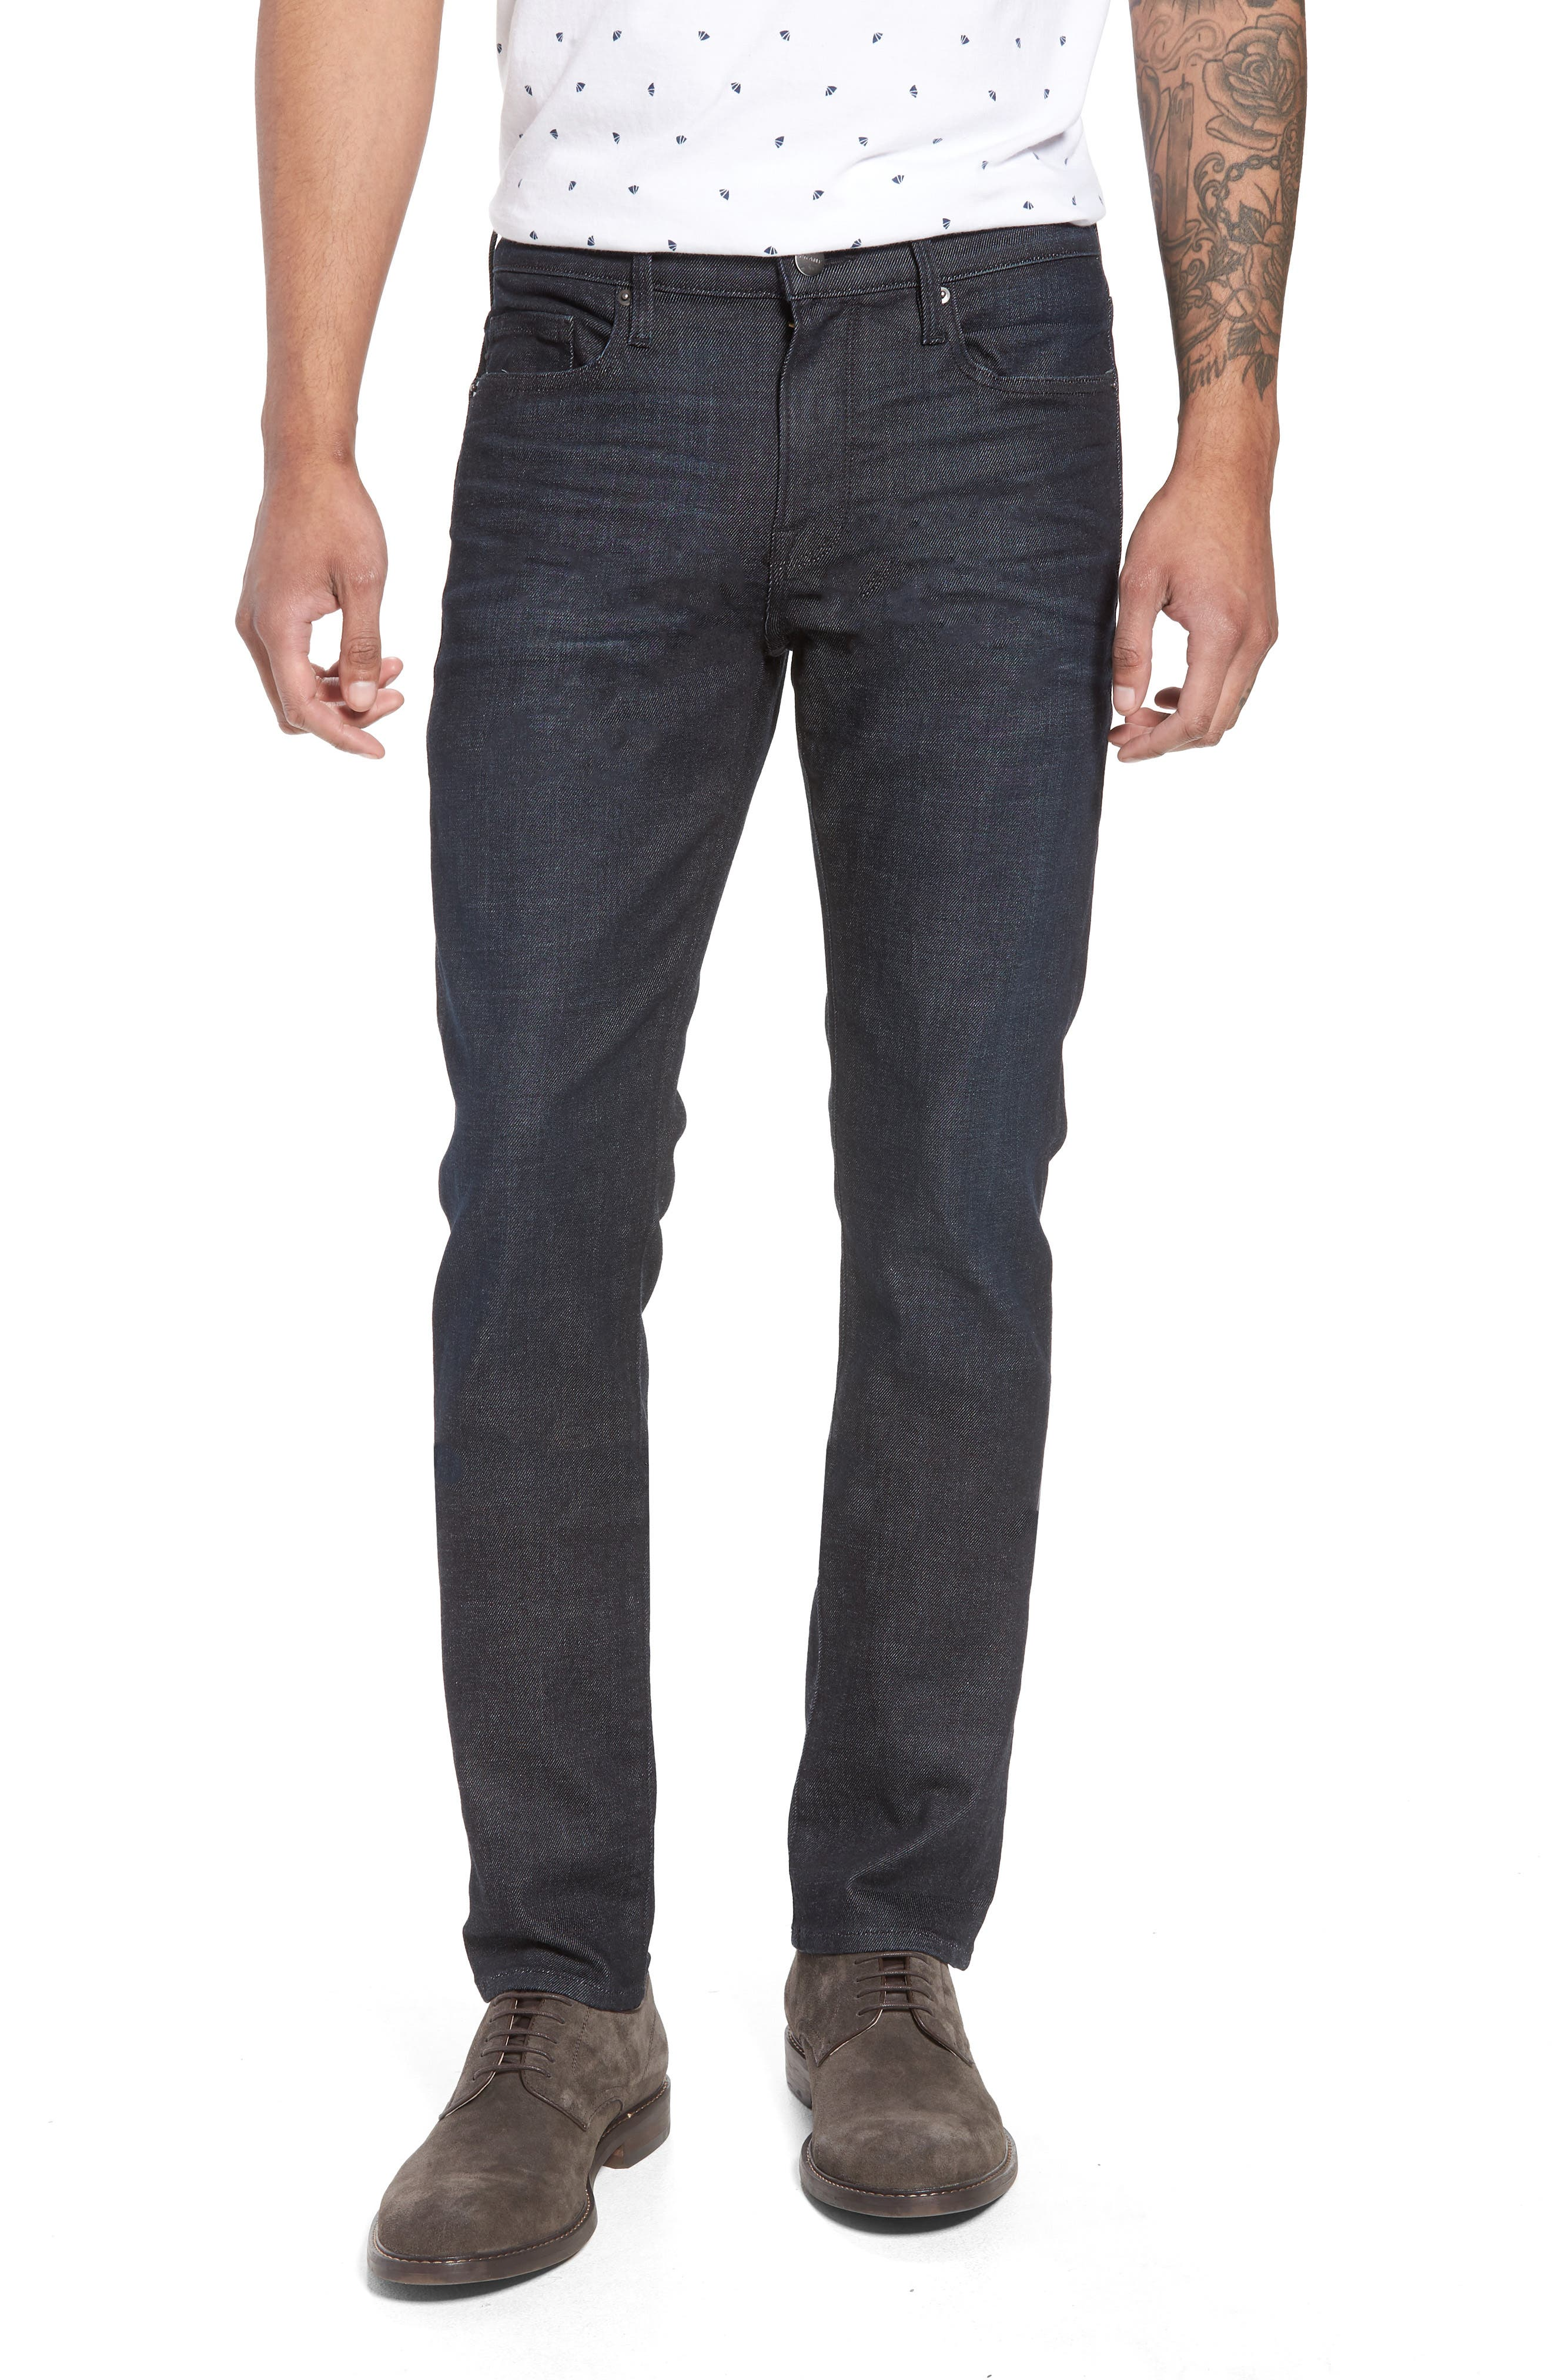 L'Homme Skinny Jeans,                             Main thumbnail 1, color,                             MANHATTAN